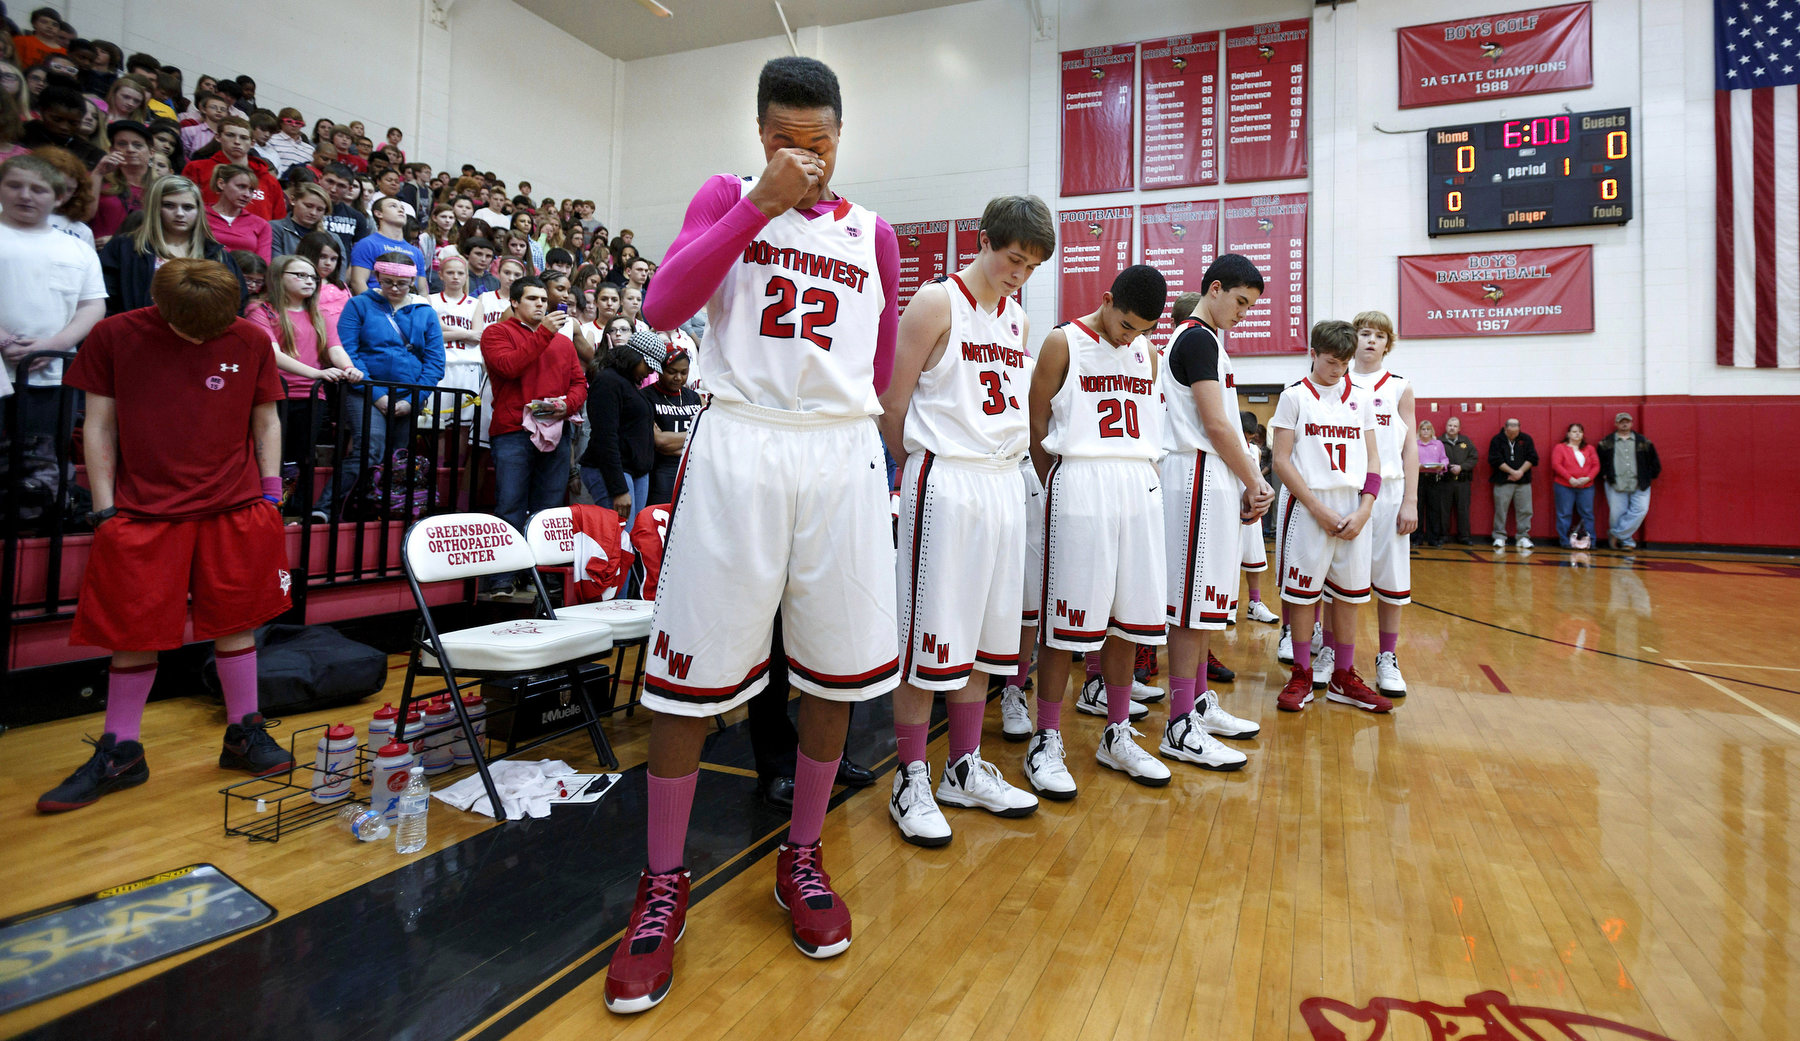 Second Place | Sports Photo Story Jerry Wolford, News & RecordNorthwest Guilford Middle School boys during a moment of silence taken for Maurice Edmonds II before their game against Jamestown which was the team's first game after Maurice's death.